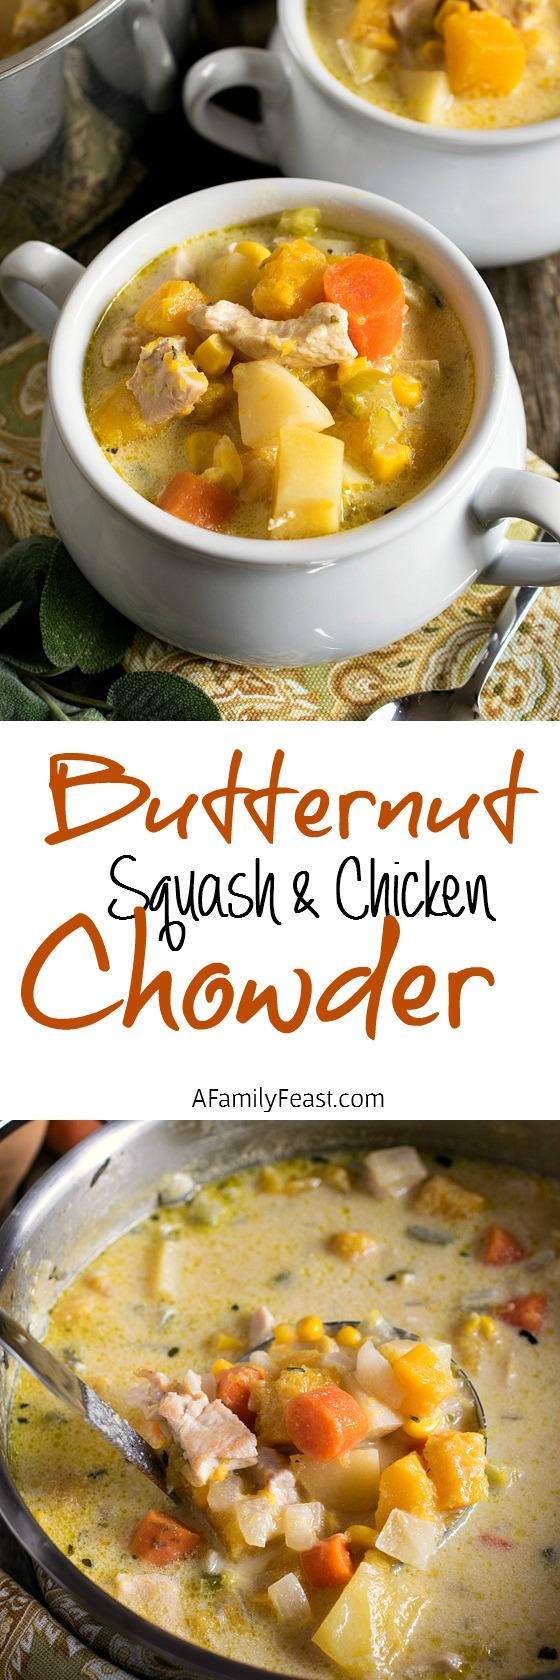 Butternut Squash and Chicken Chowder - A fantastic Fall soup! Wonderful savory flavors including sage, chicken and butternut squash.